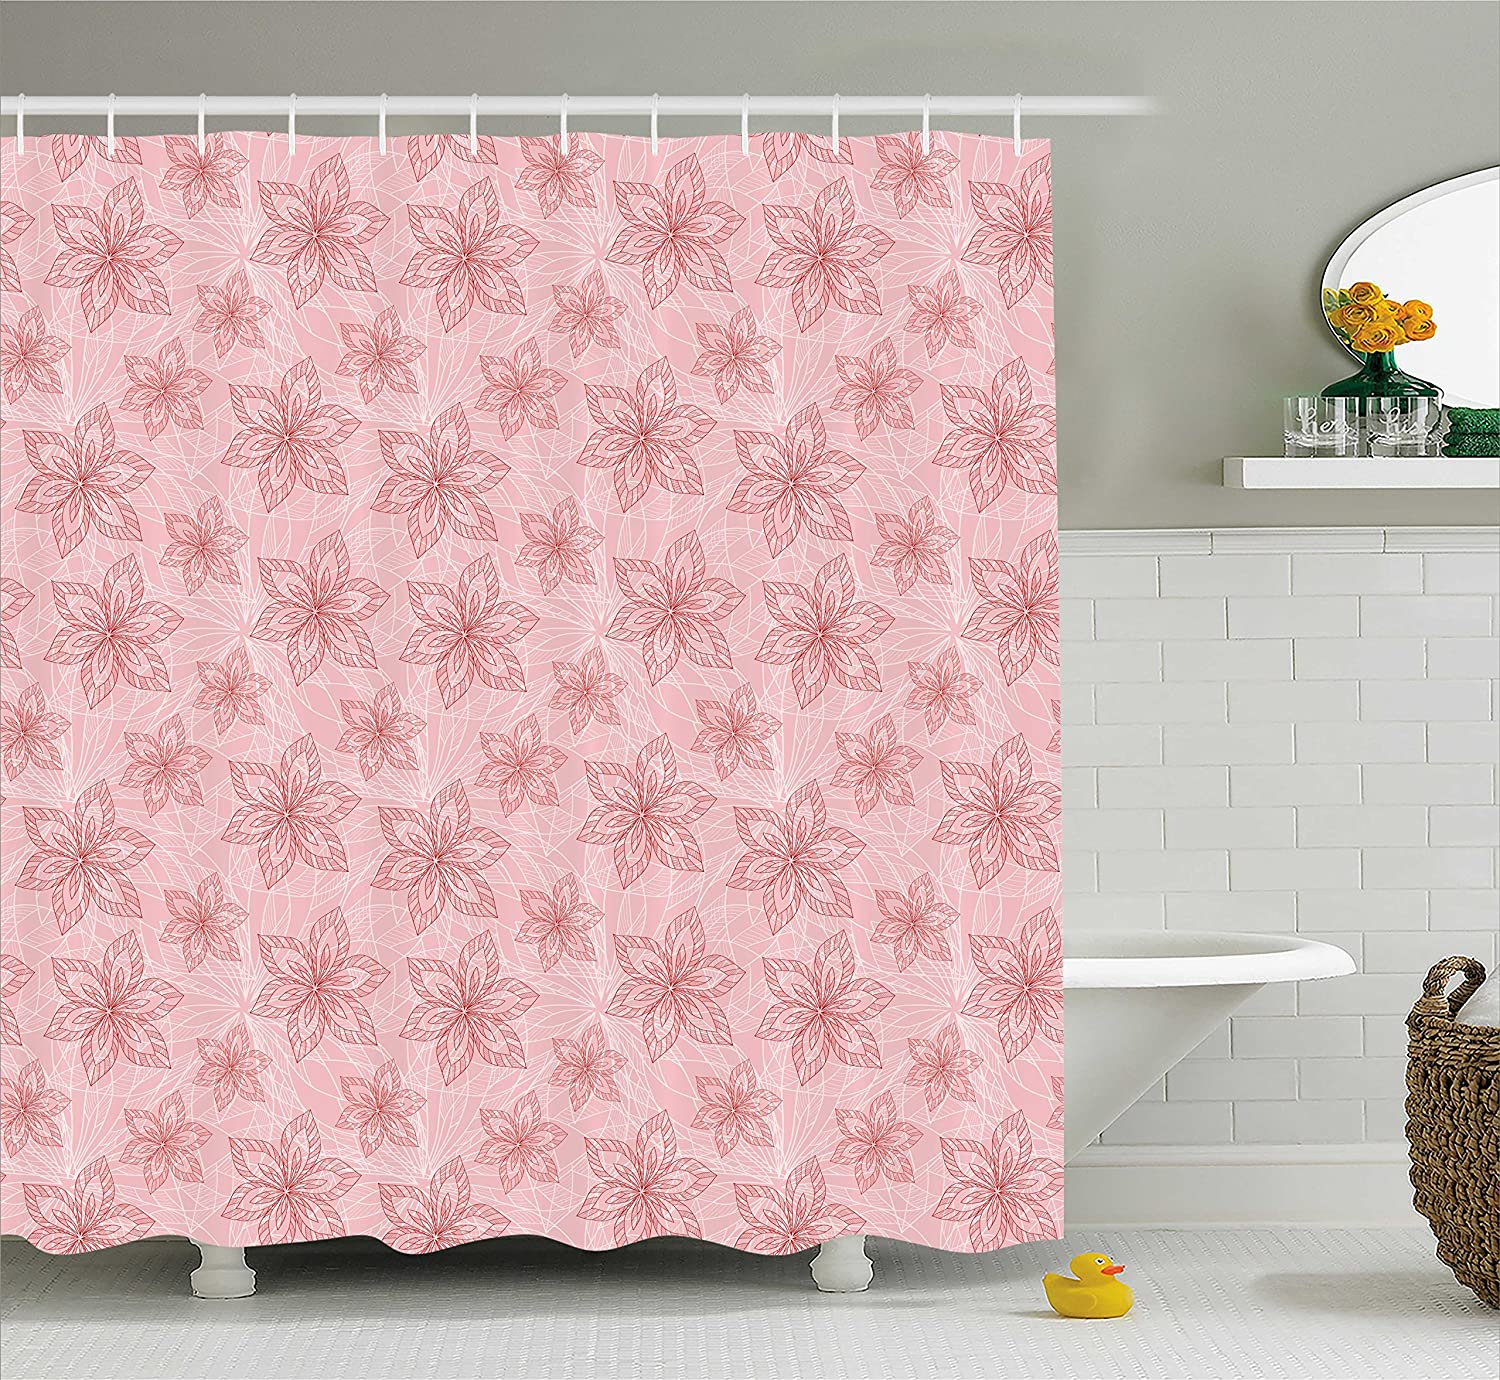 Amazon.com: Ambesonne Floral Shower Curtain by, Blue Jeans ...